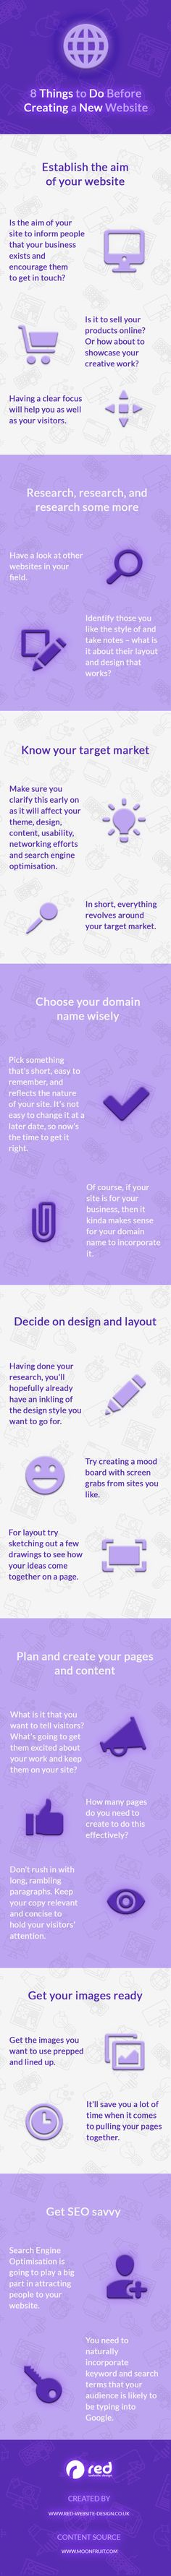 Pre-Web Design Checklist: 8 Things to Do Before Creating a New Website [Infographic]